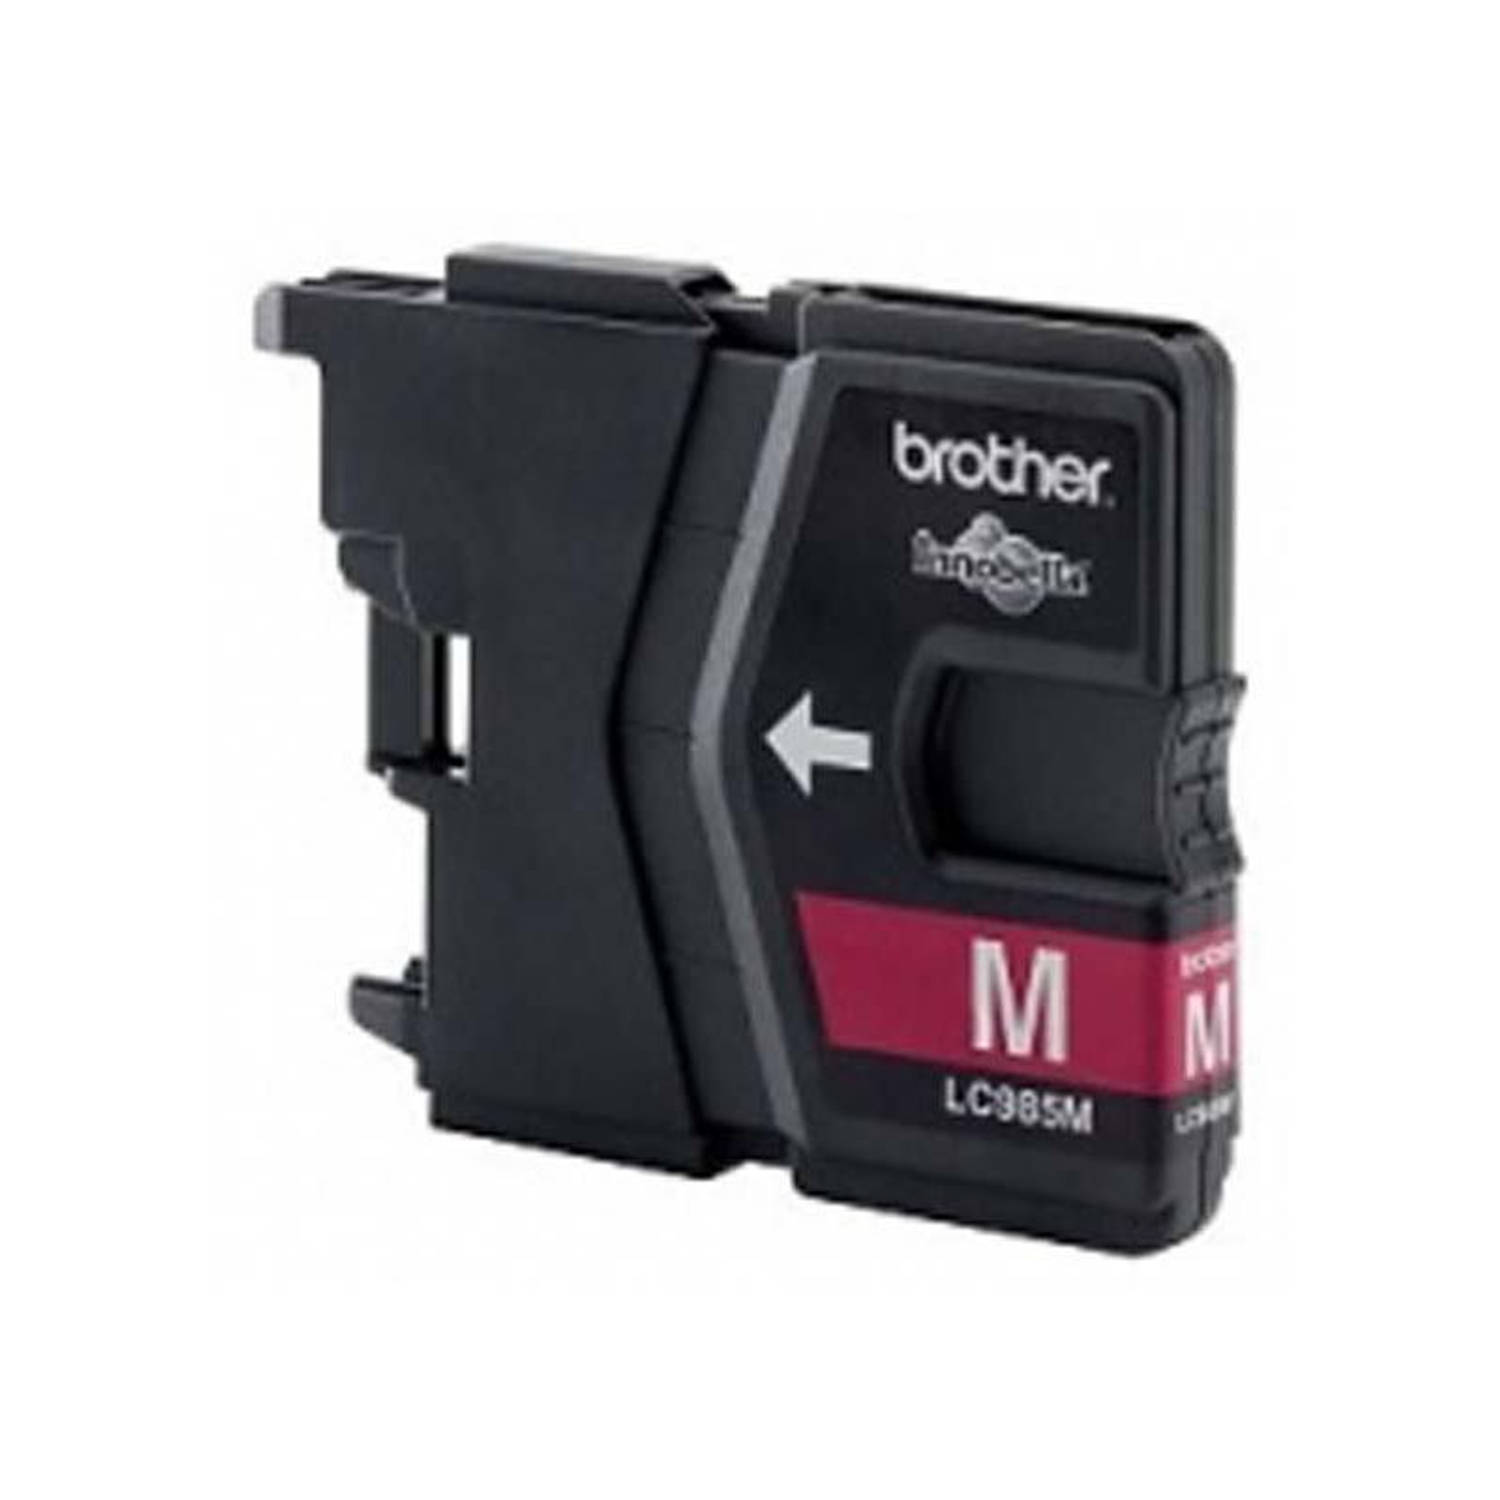 Brother LC-985M magenta Cartridge